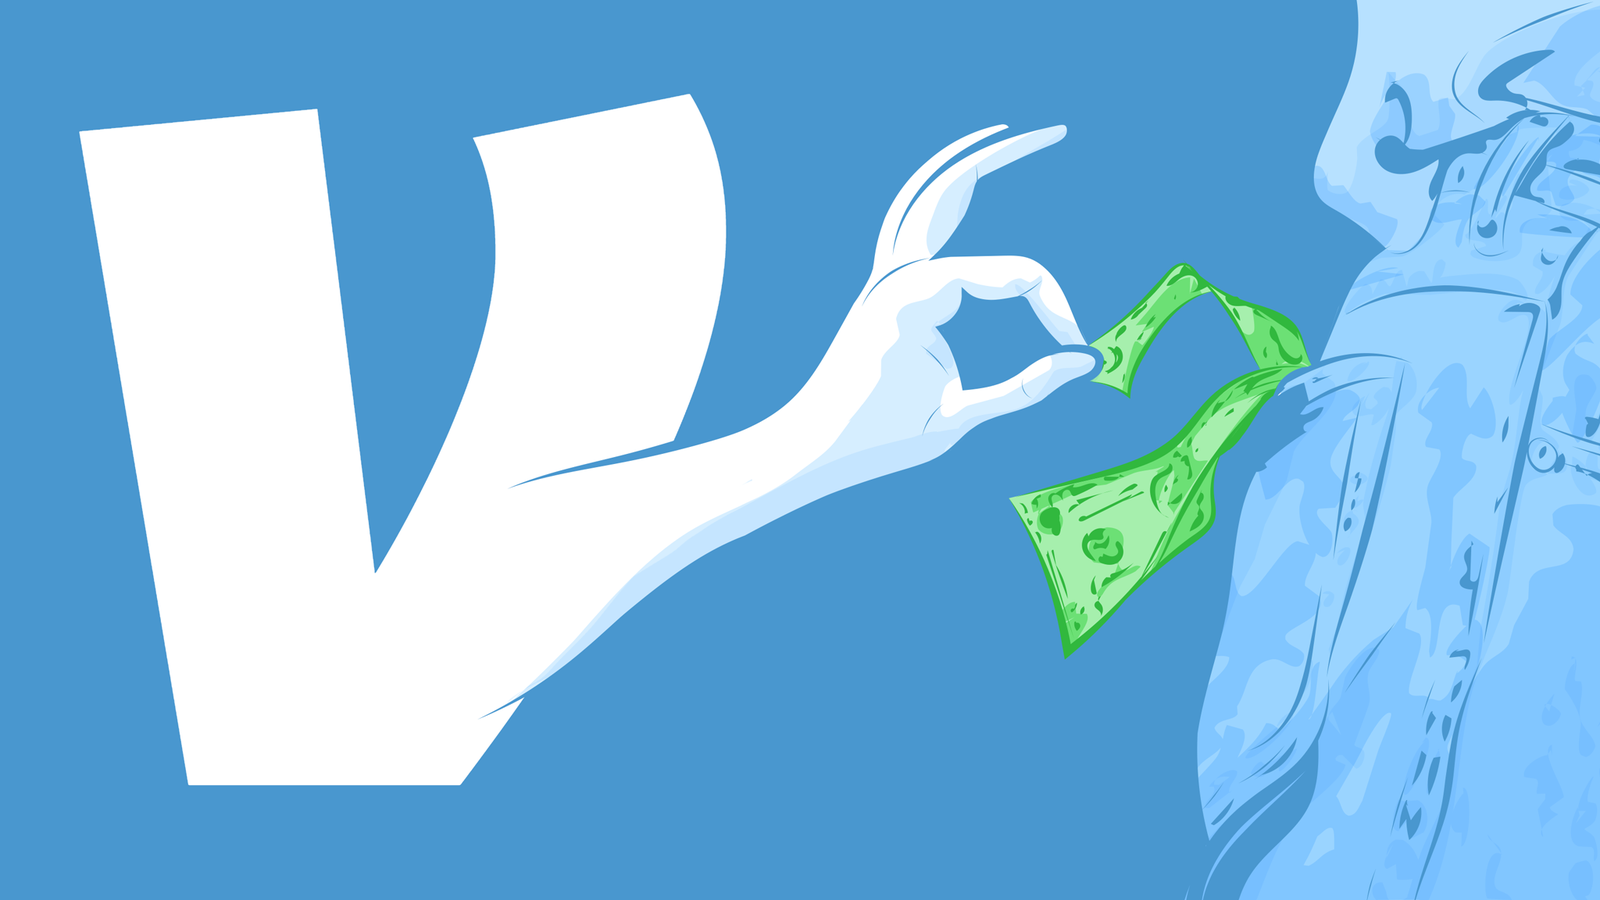 Consumers allege venmo swiped 3 000 even though they never had accounts